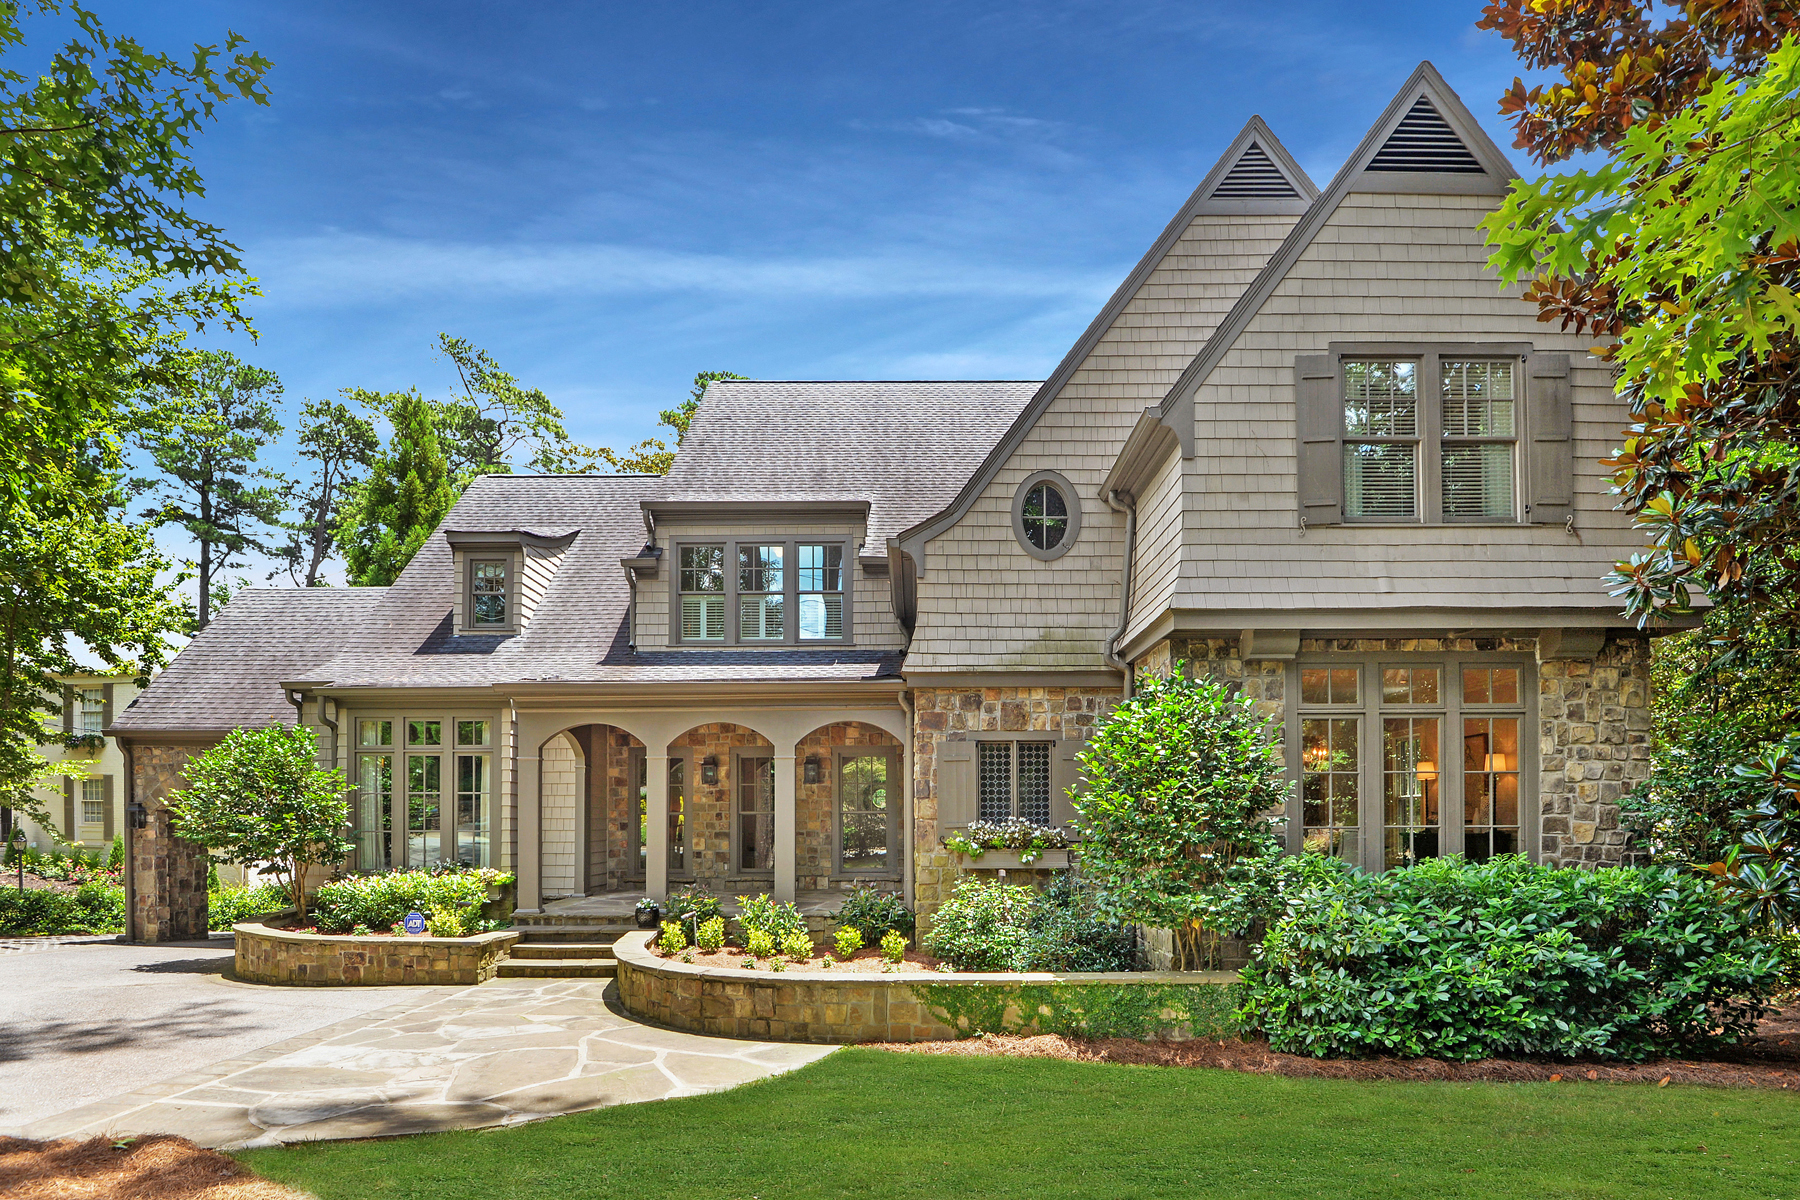 Property for Sale at Stunning Dutch-Colonial Style Home in Buckhead 3303 Habersham Road NW Atlanta, Georgia 30305 United States